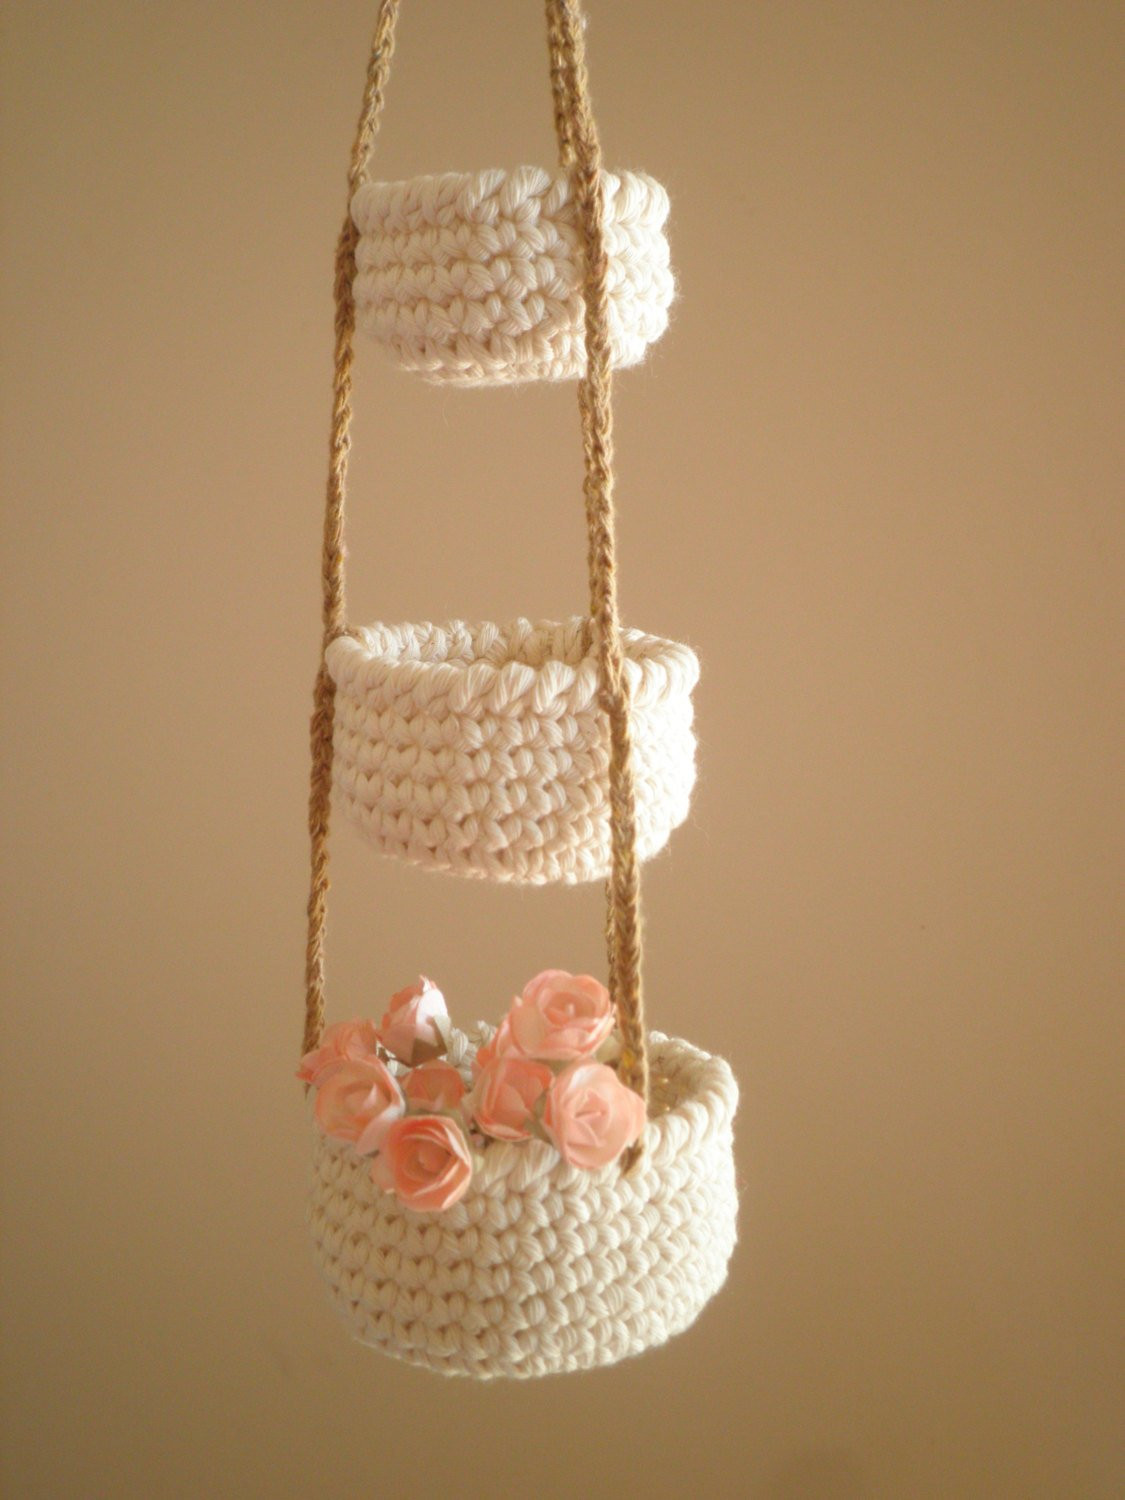 New 3 Tier Little Crochet Baskets Mini Hanging Baskets Country Crochet Hanging Basket Of Awesome 47 Photos Crochet Hanging Basket